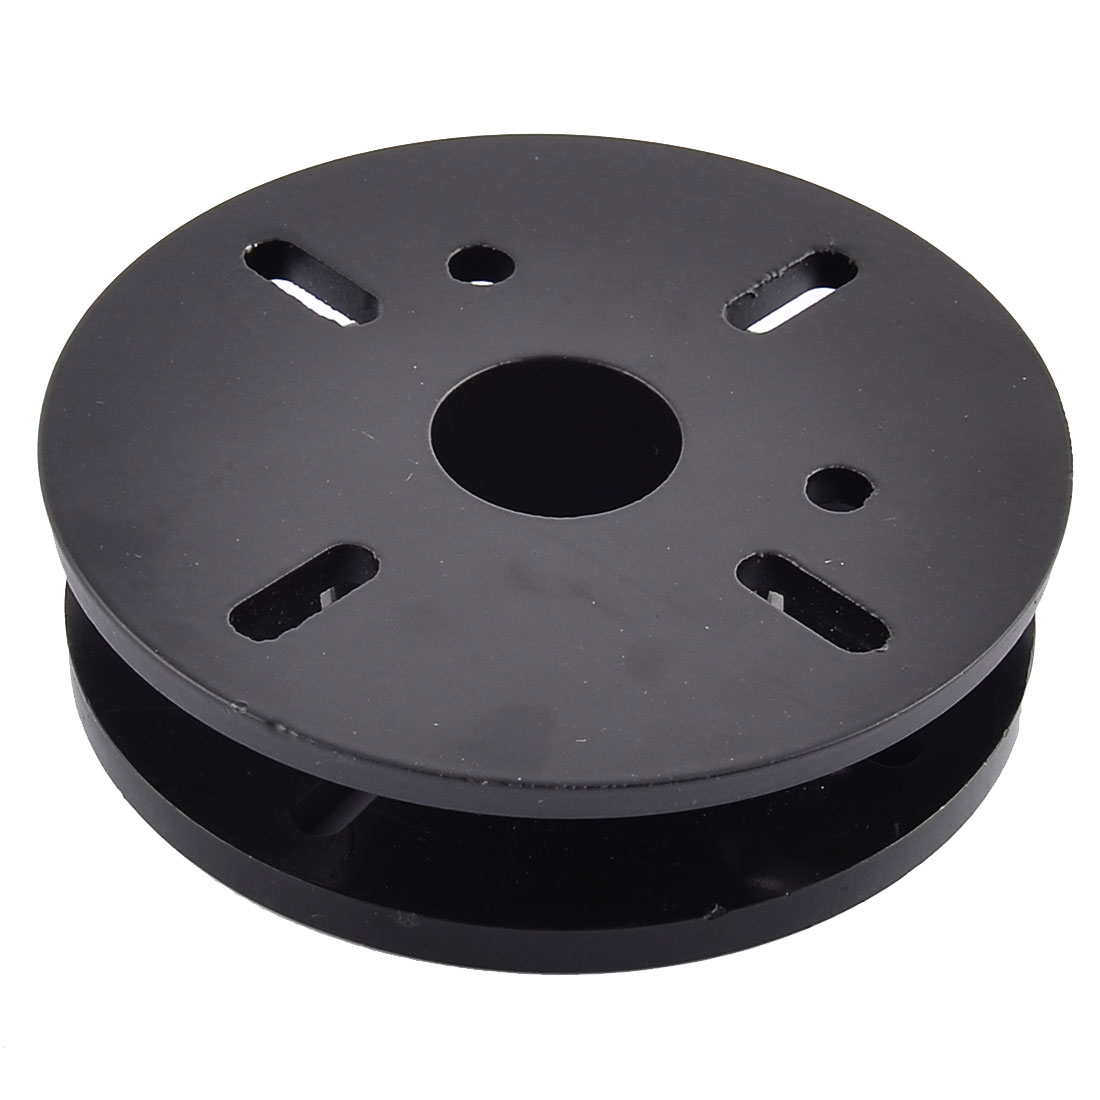 Round Shaped Video Aluminium Spacer Kit Increased Pad Black 10.2cm Dia 2.6cm Height